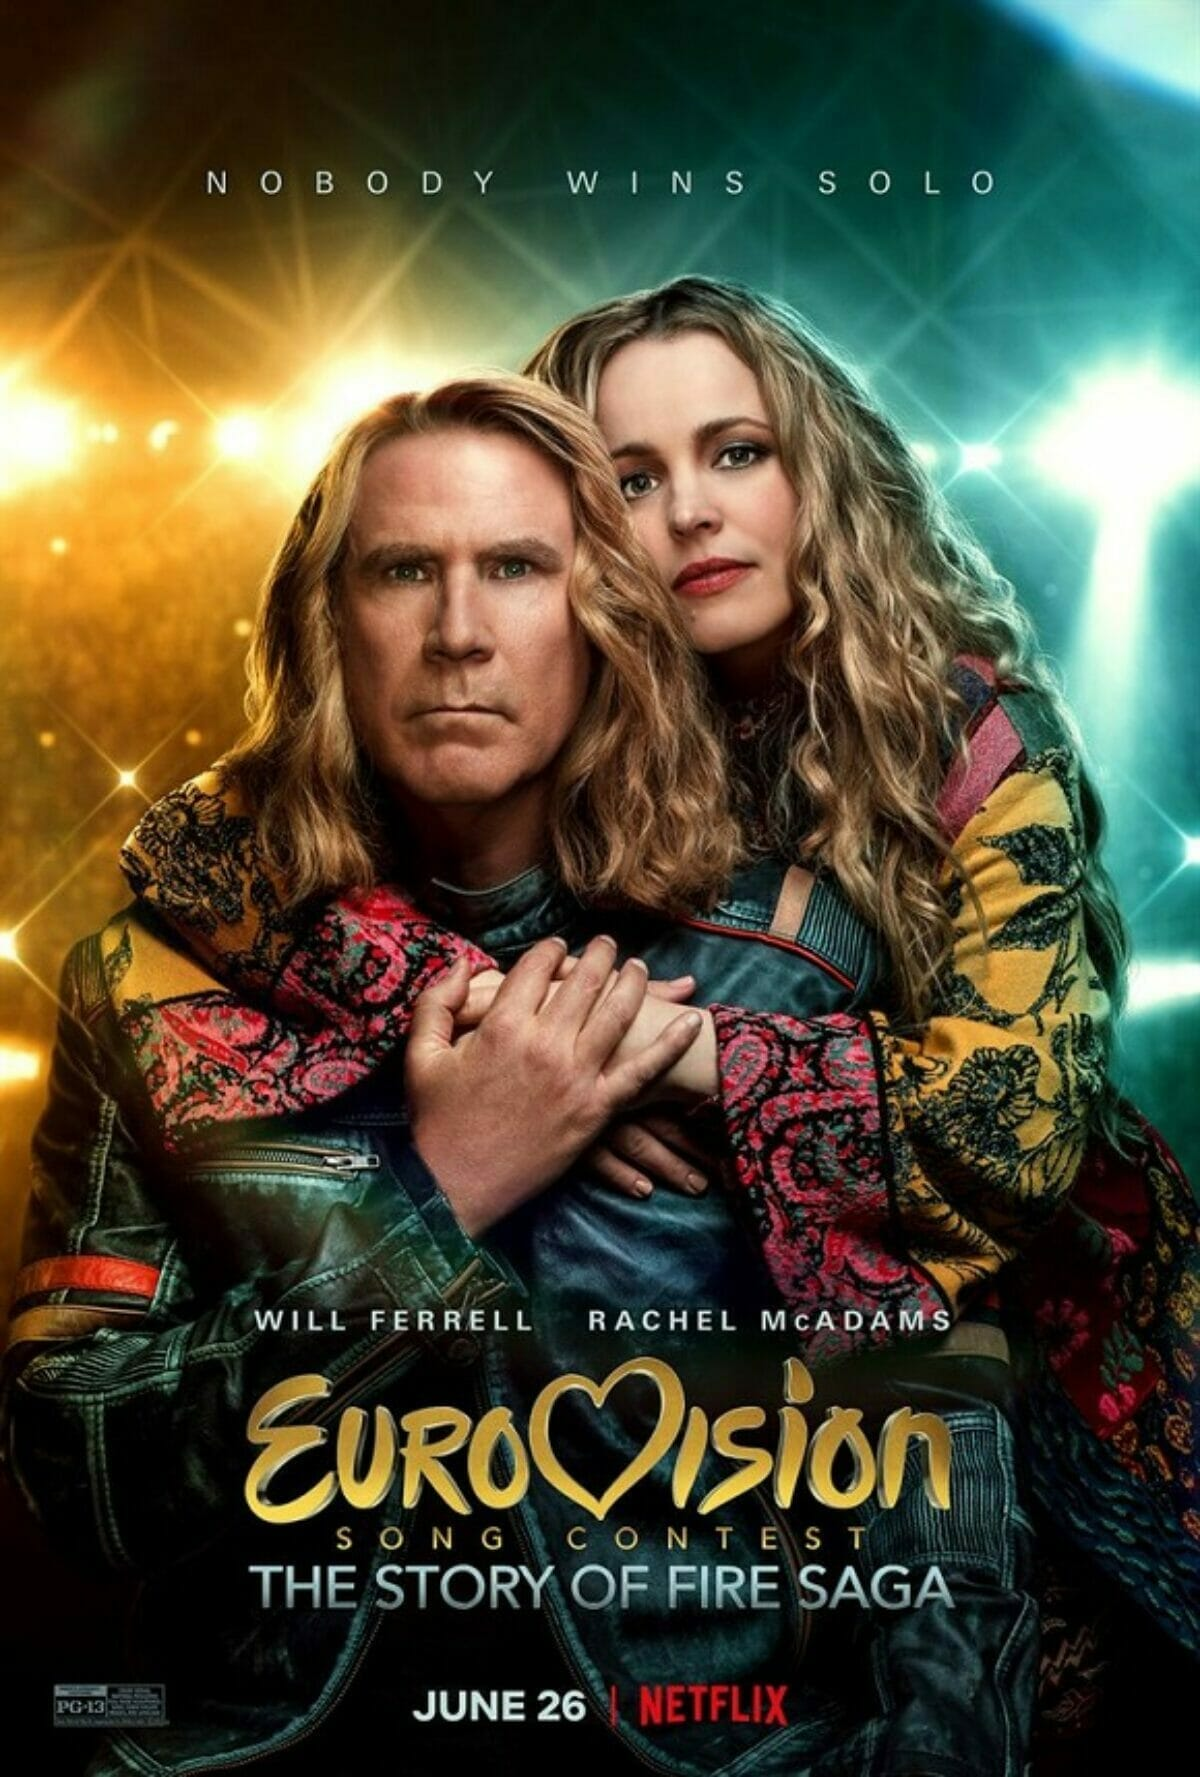 Eurovision-song-contest-poster